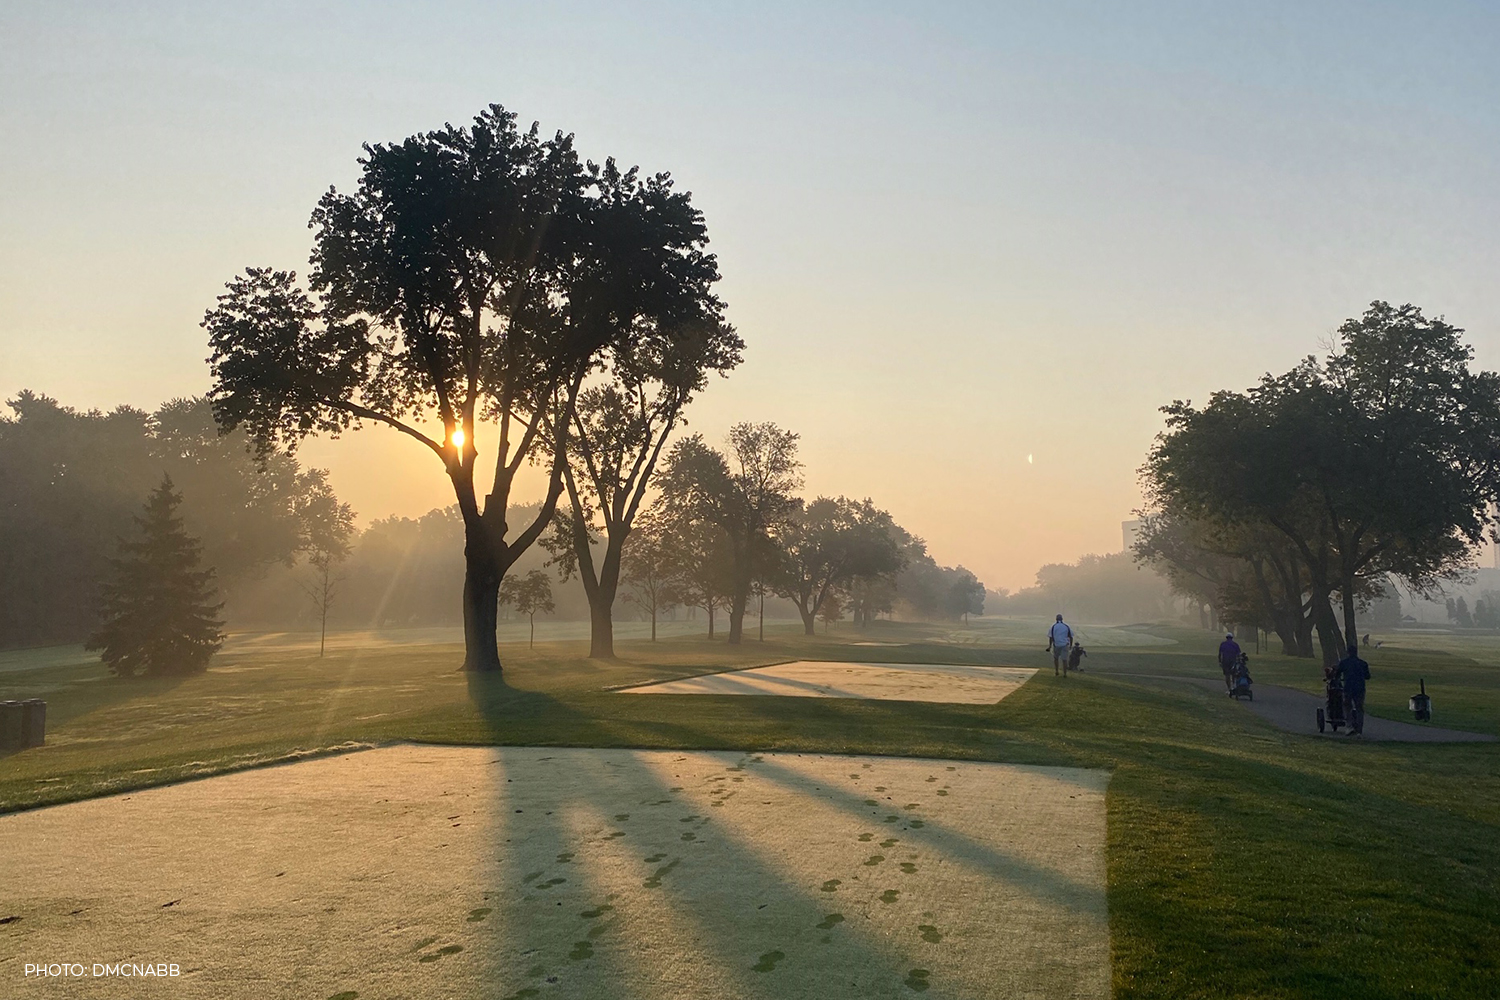 MIsty fall morning on the course at Islington Golf Club